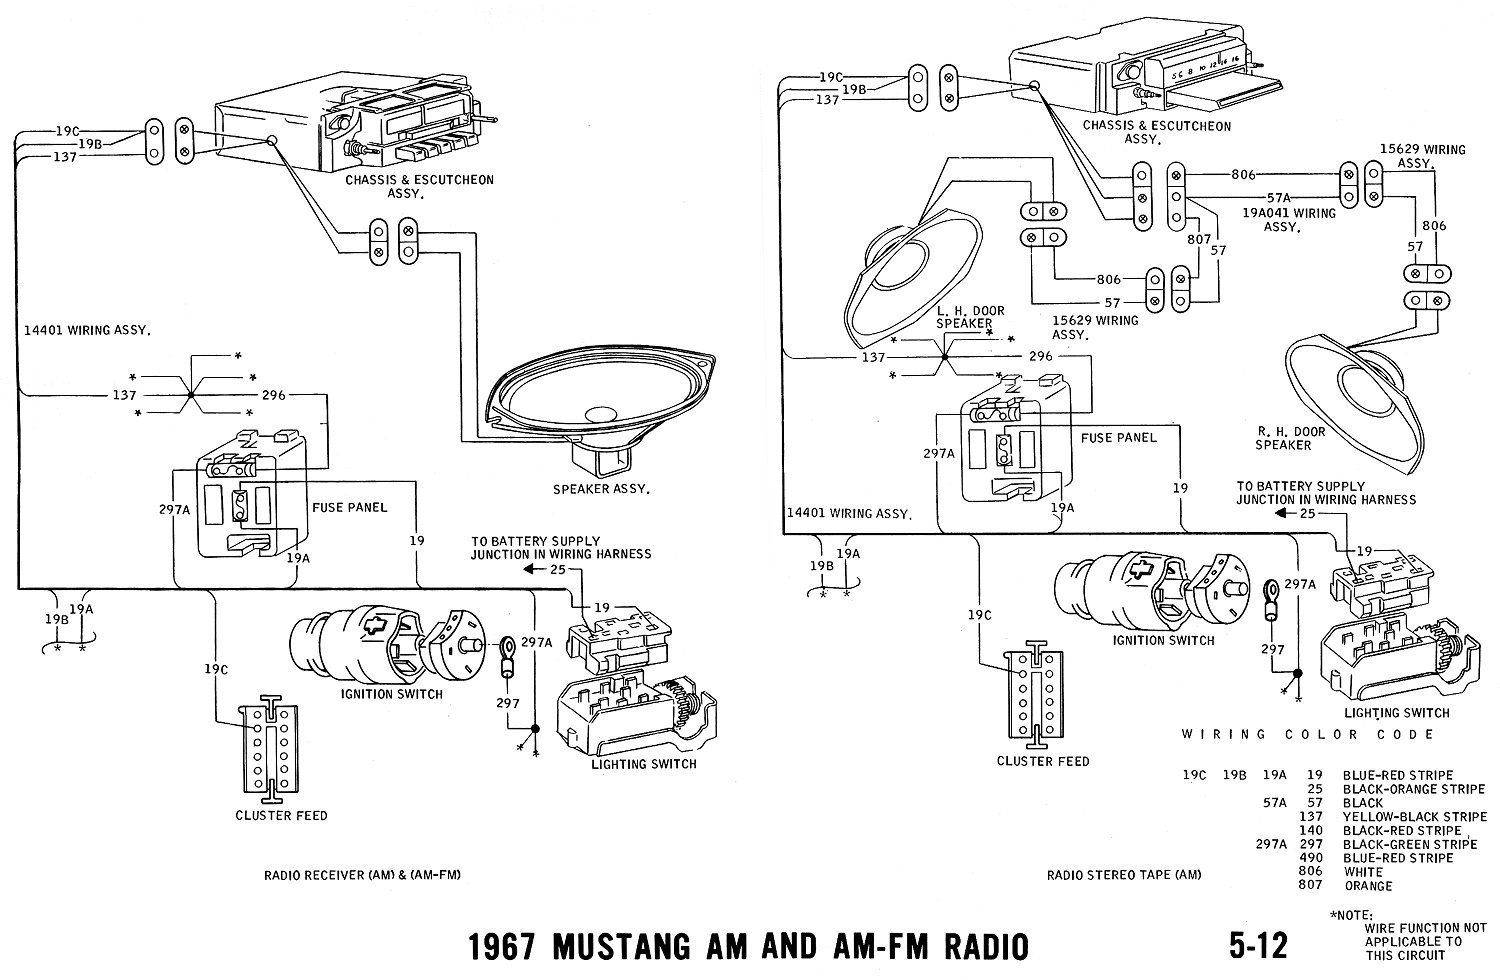 65 Mustang Fog Light Wiring Diagram Great Design Of 2003 Ford 1967 And Vacuum Diagrams Average Joe 1965